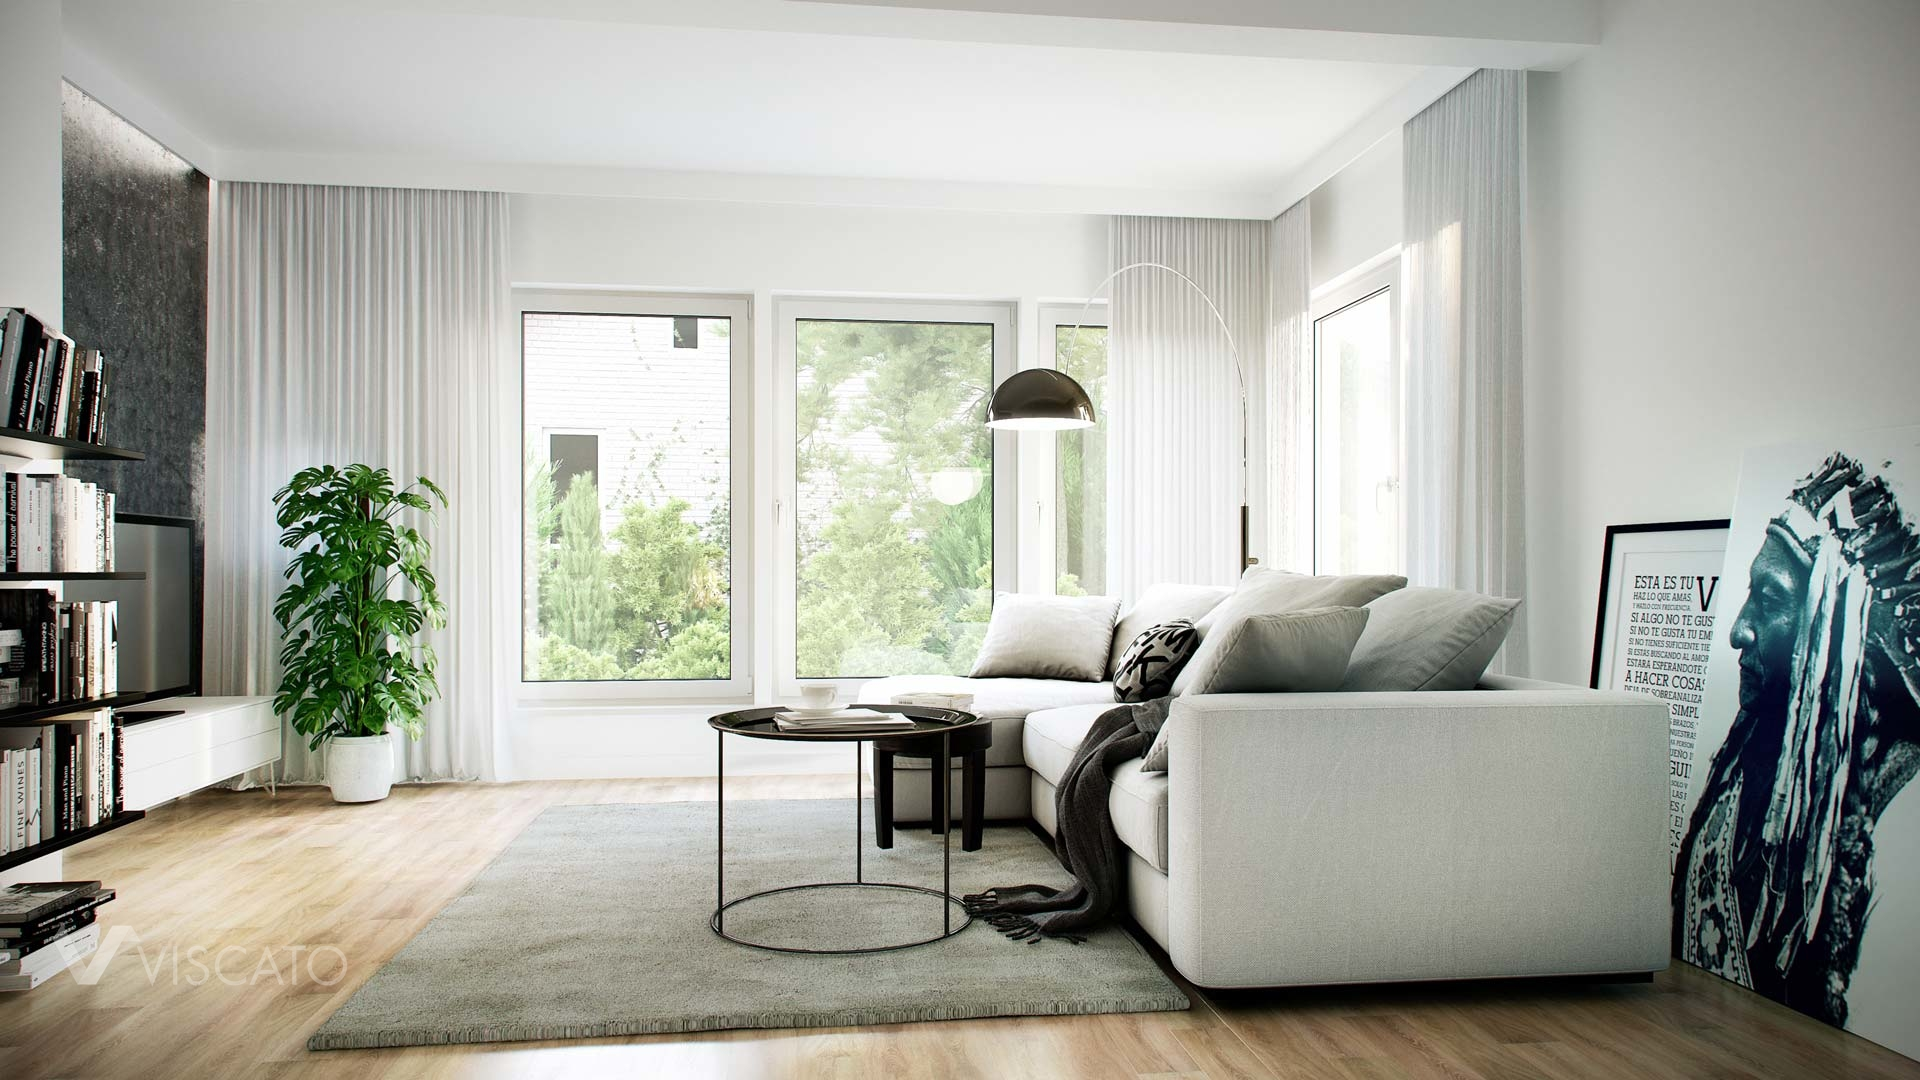 3D renderings of a bright living-room with white curtains Viscato